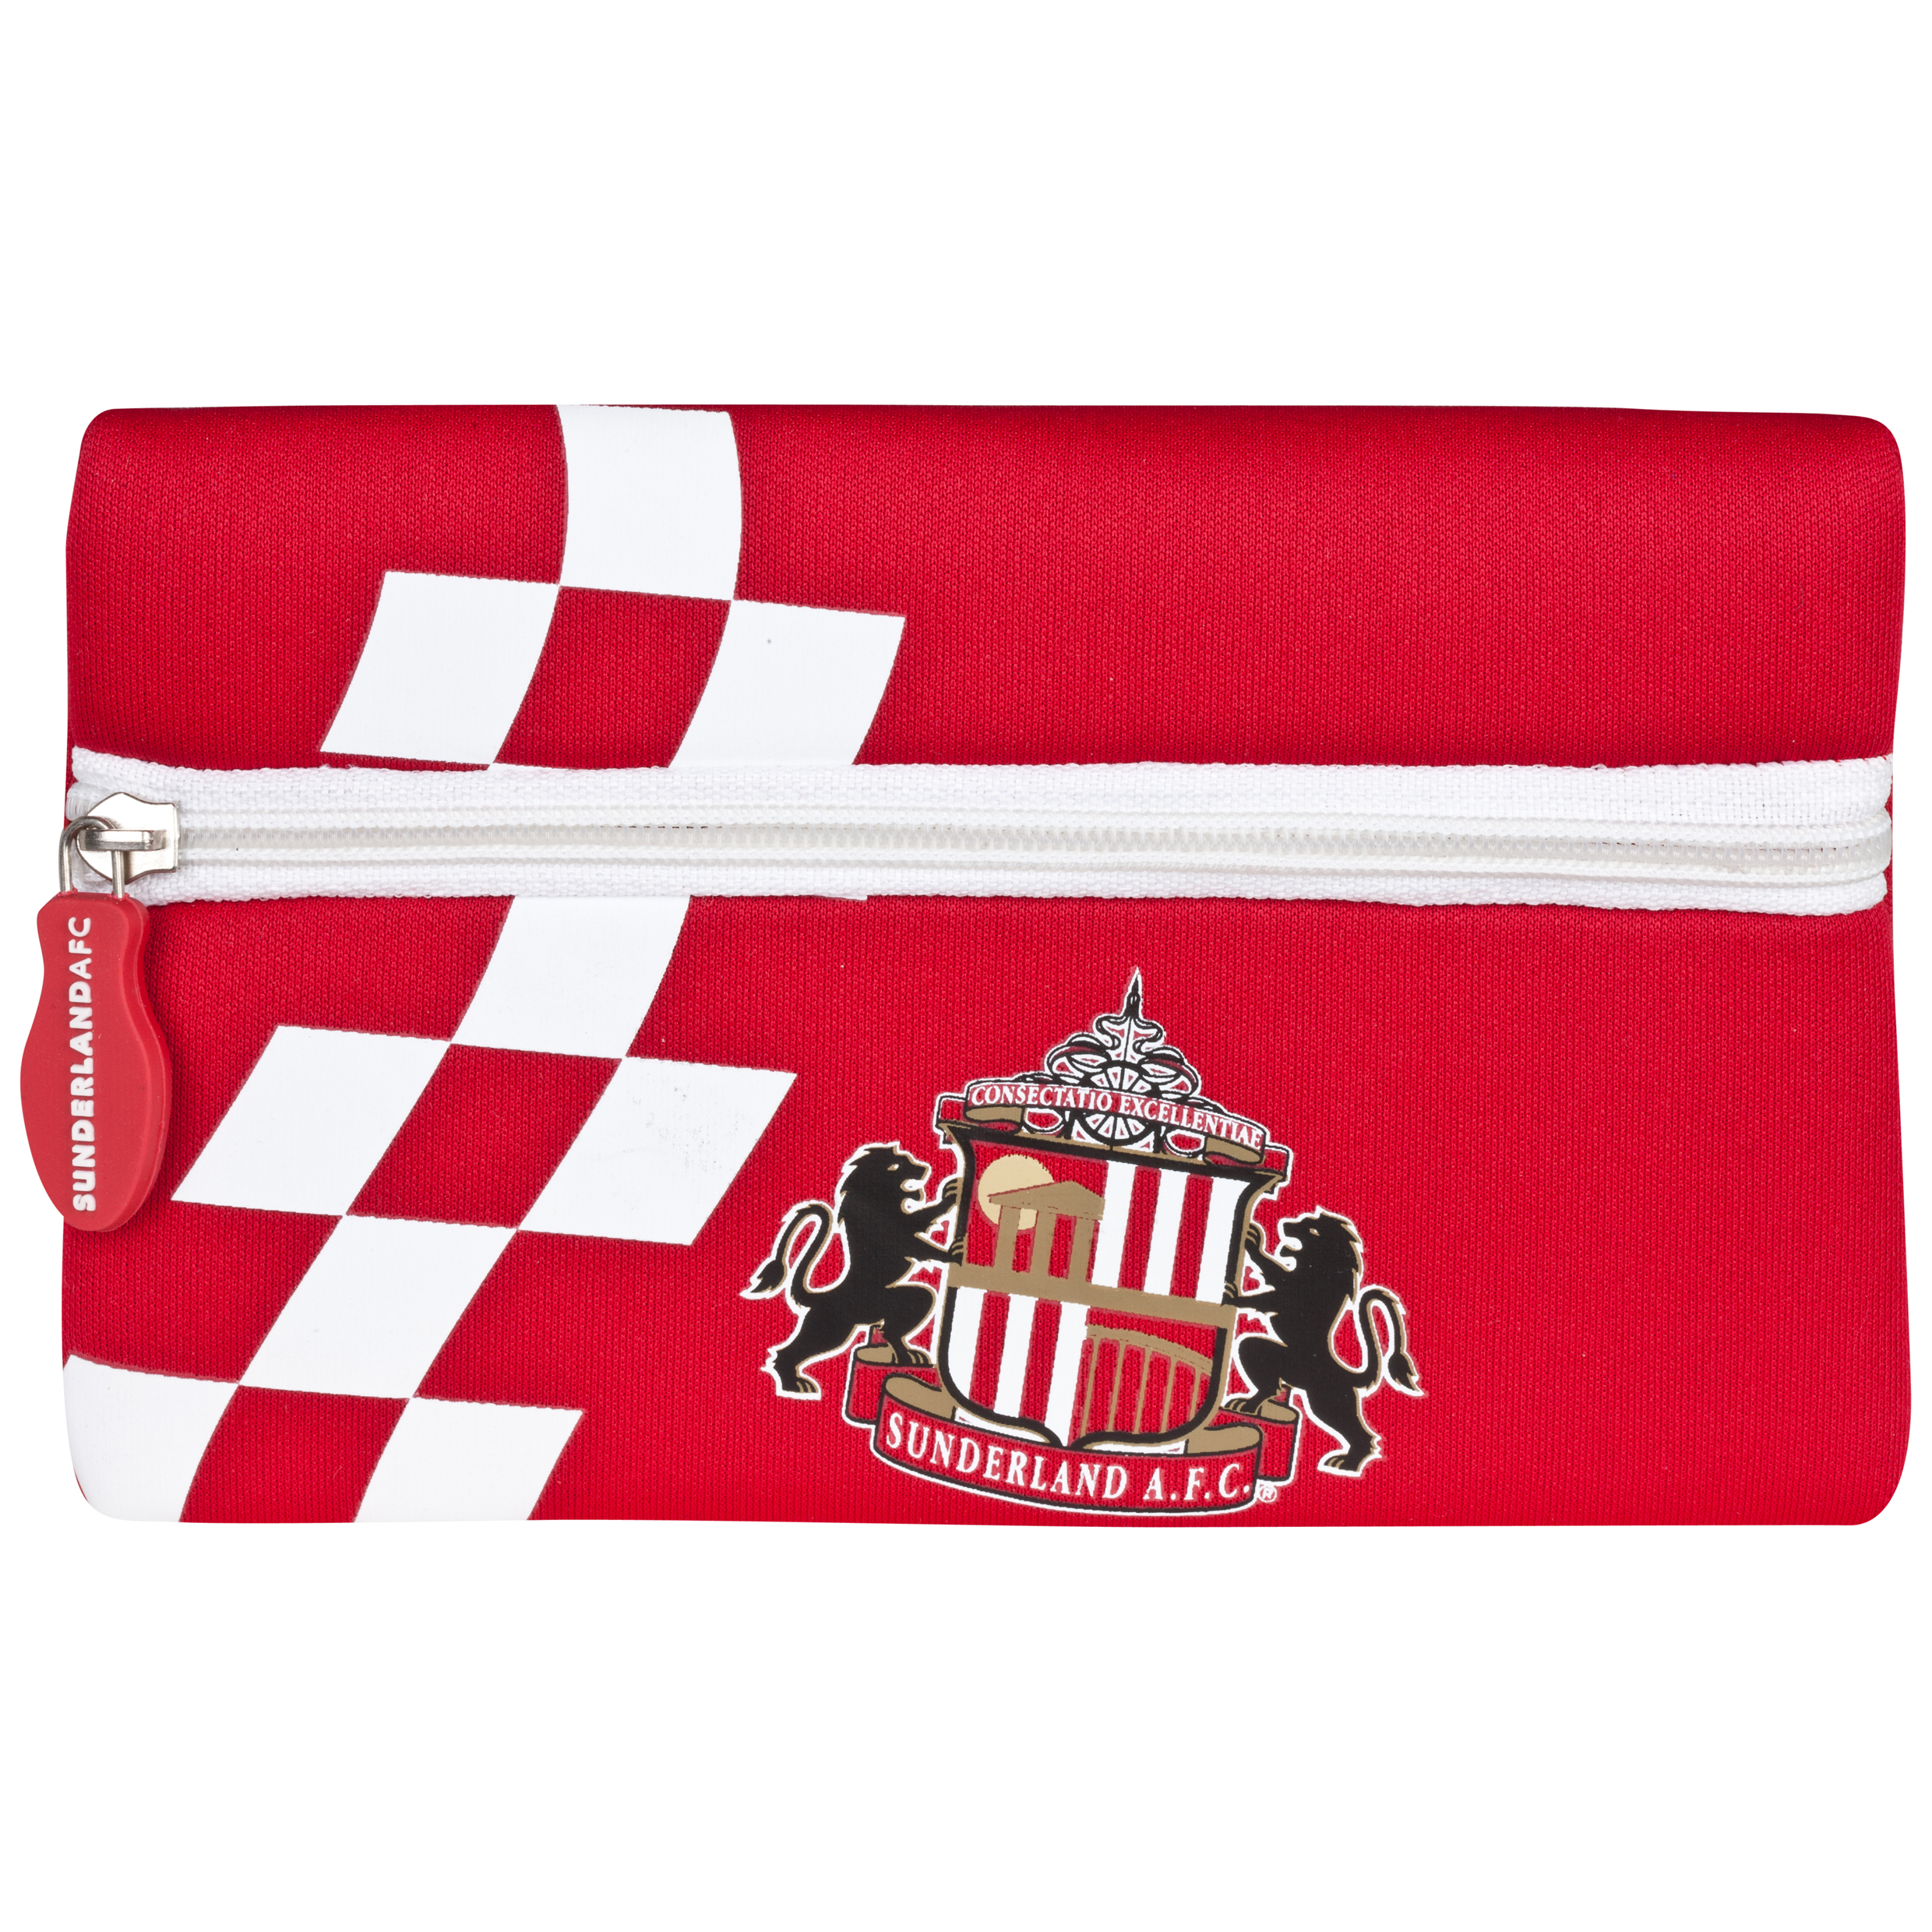 Sunderland Neoprene Pencil Case